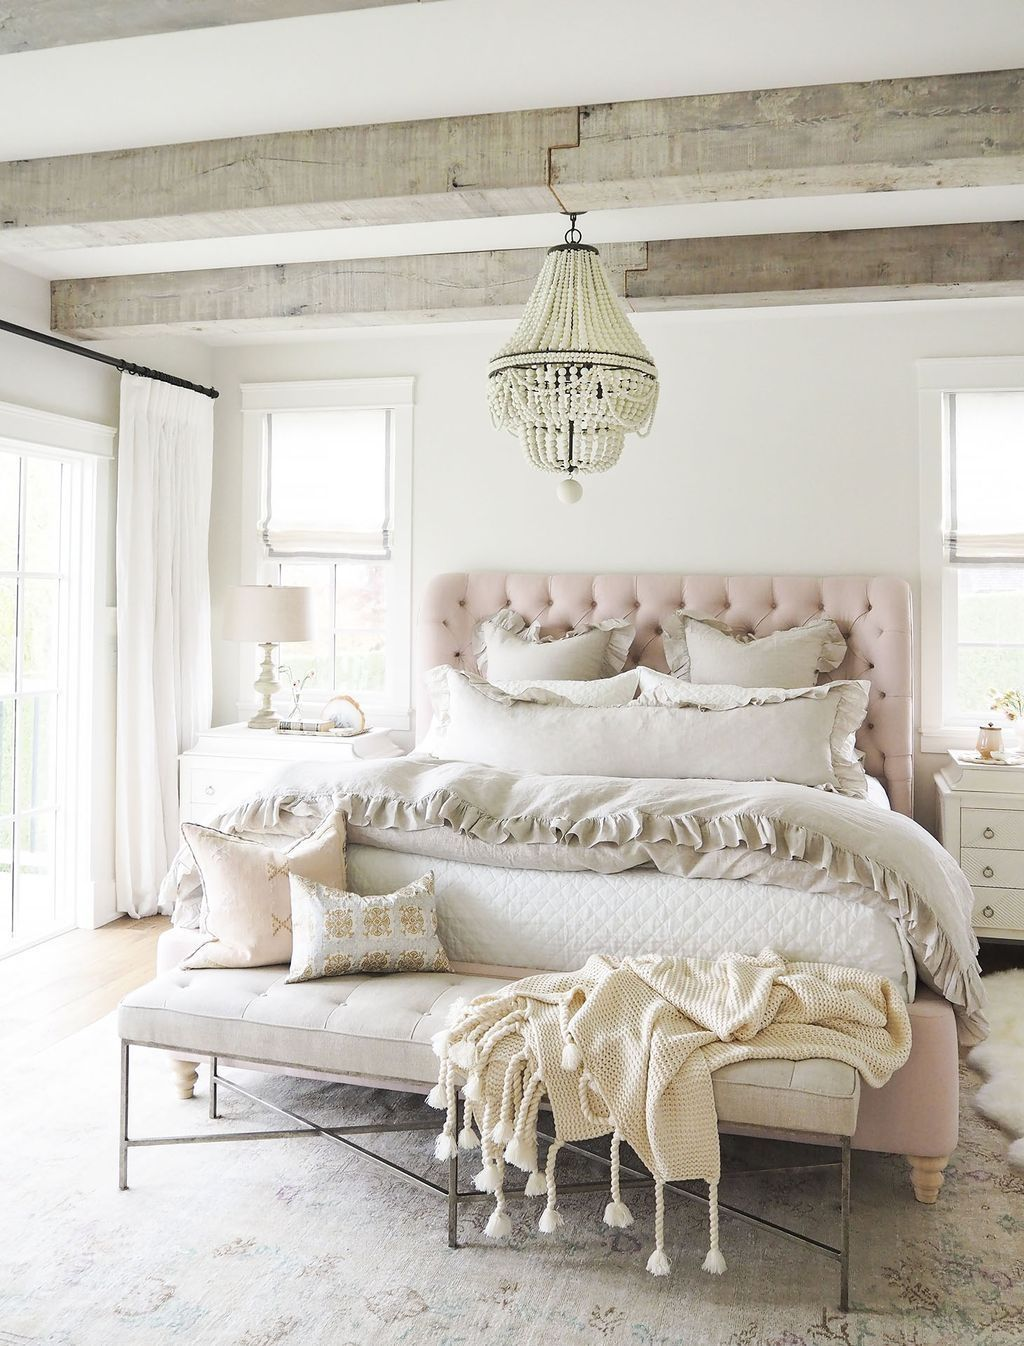 Pin By Kristin Malina On Mke Room | Bedroom, Farmhouse Master